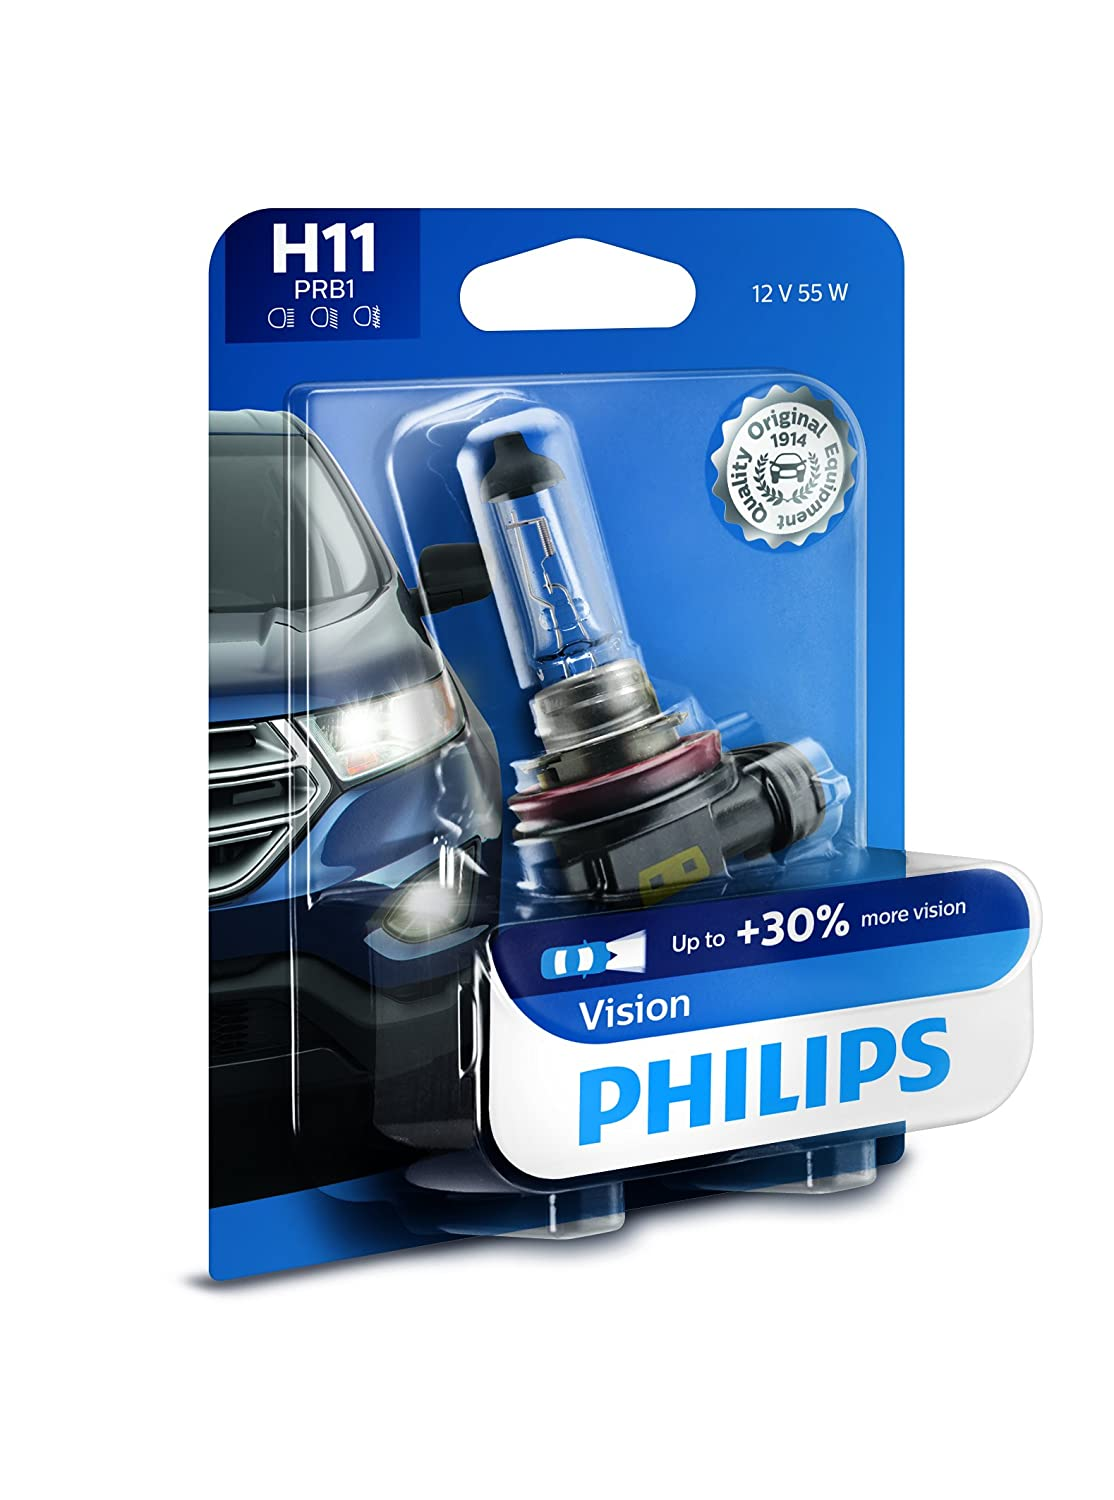 Philips 12362PRB1 H11 Upgrade Headlight Bulb with up to 30% More Vision, 1 Pack